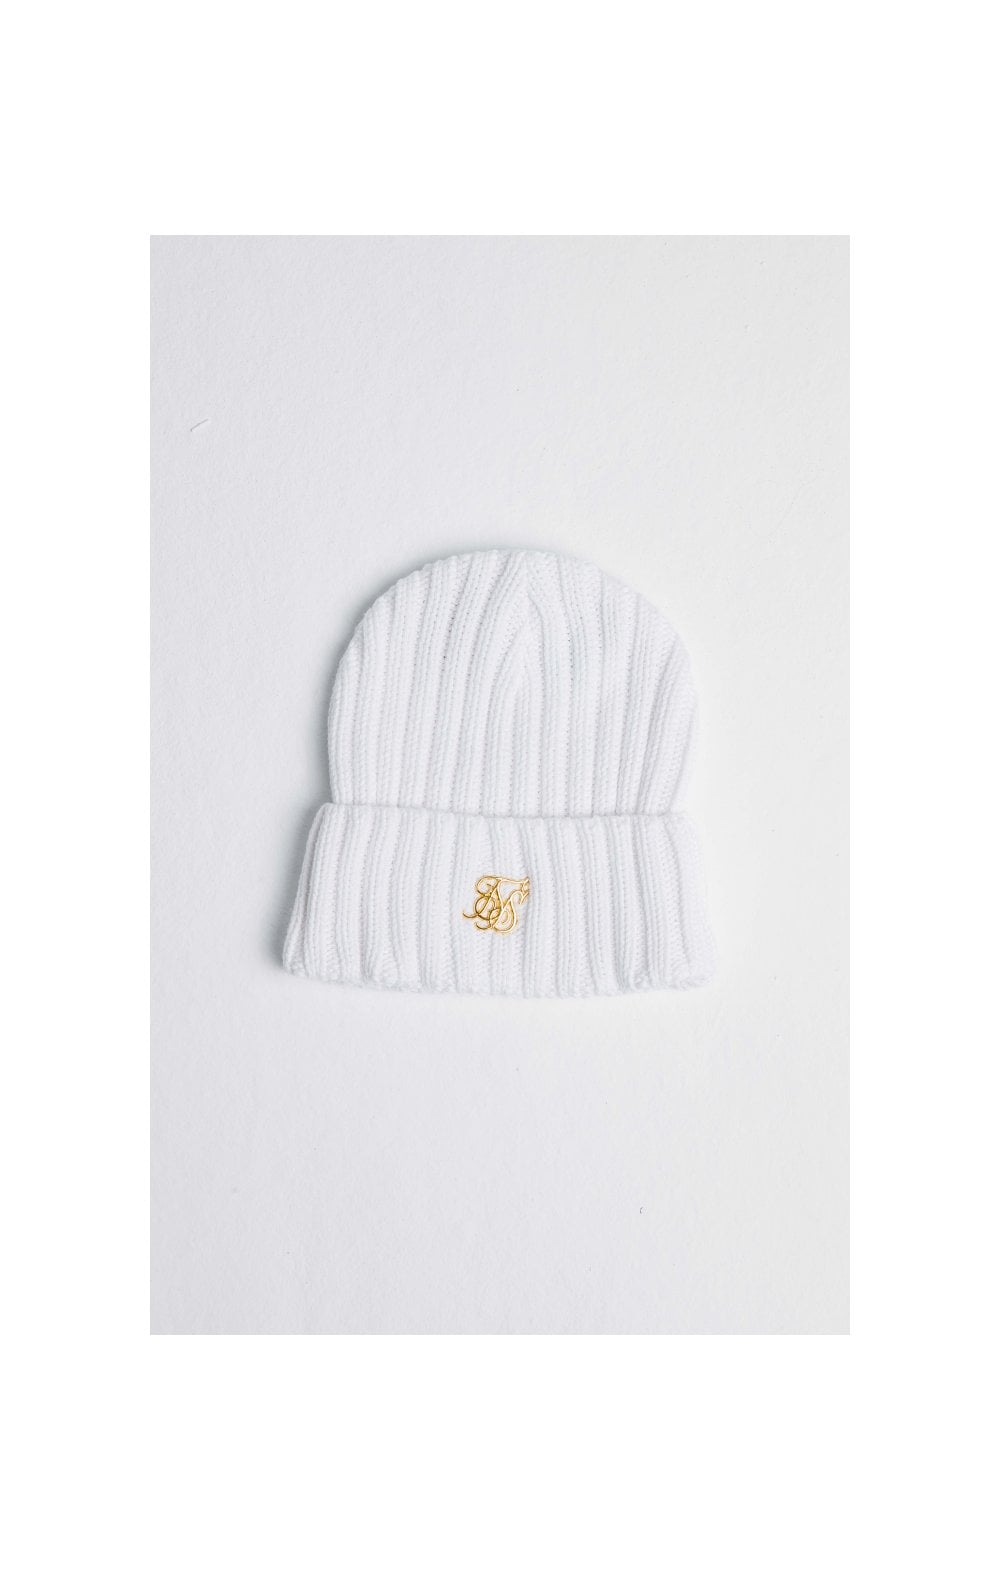 SikSilk Rib Cuff Knit Beanie - White & Gold